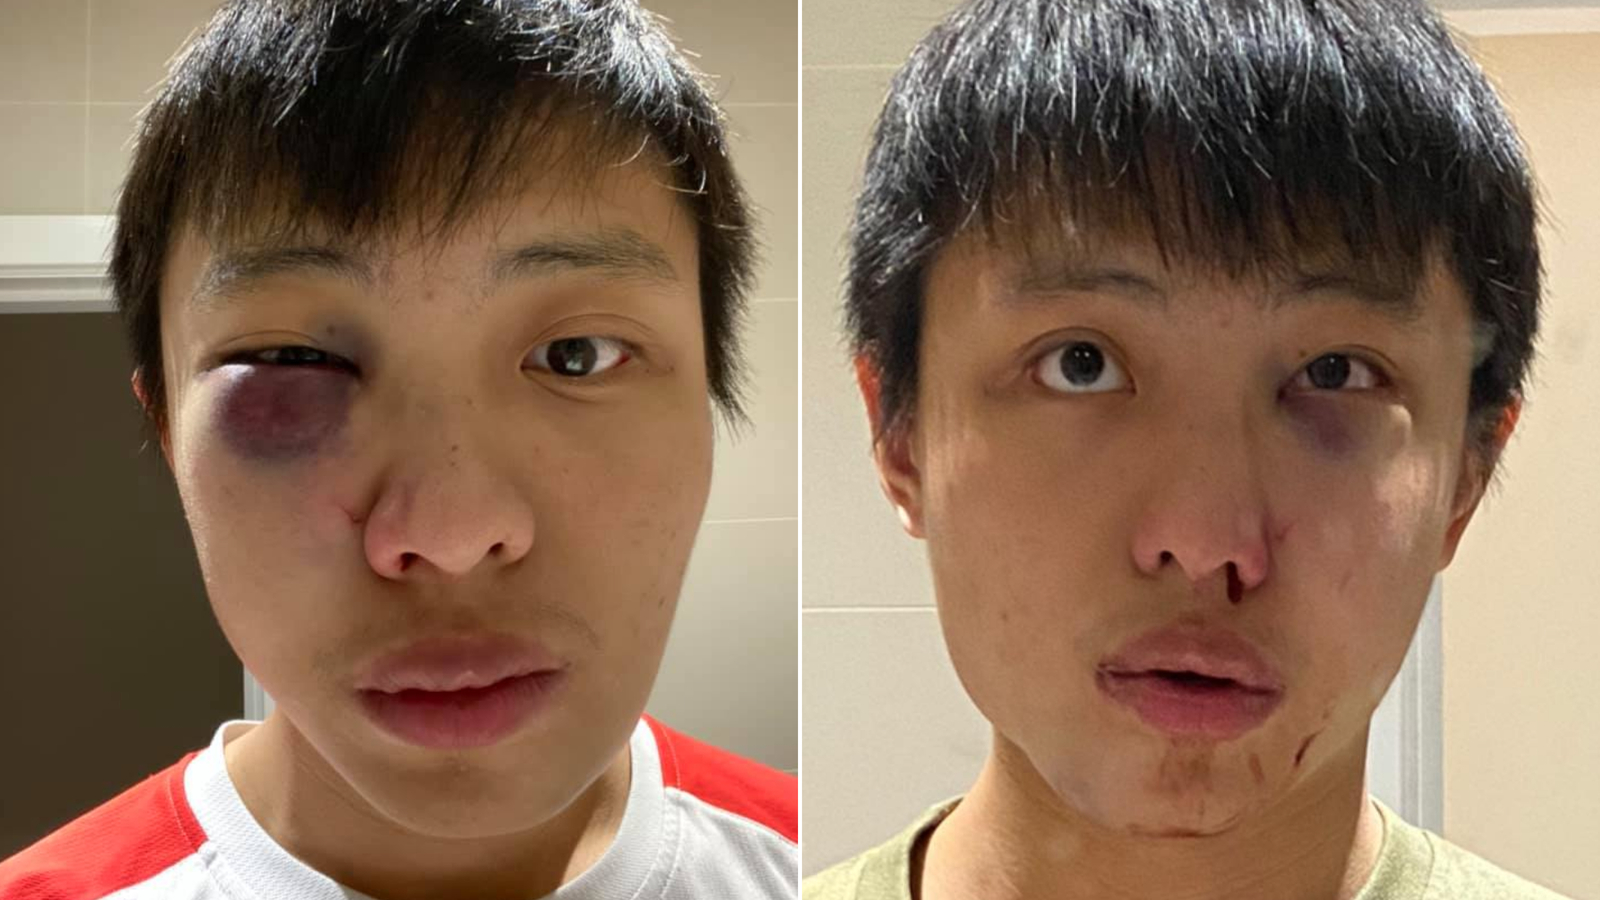 Jonathan Mok, a Chinese student, said he was attacked in London. (Jonathan Mok/ Facebook via CNN)